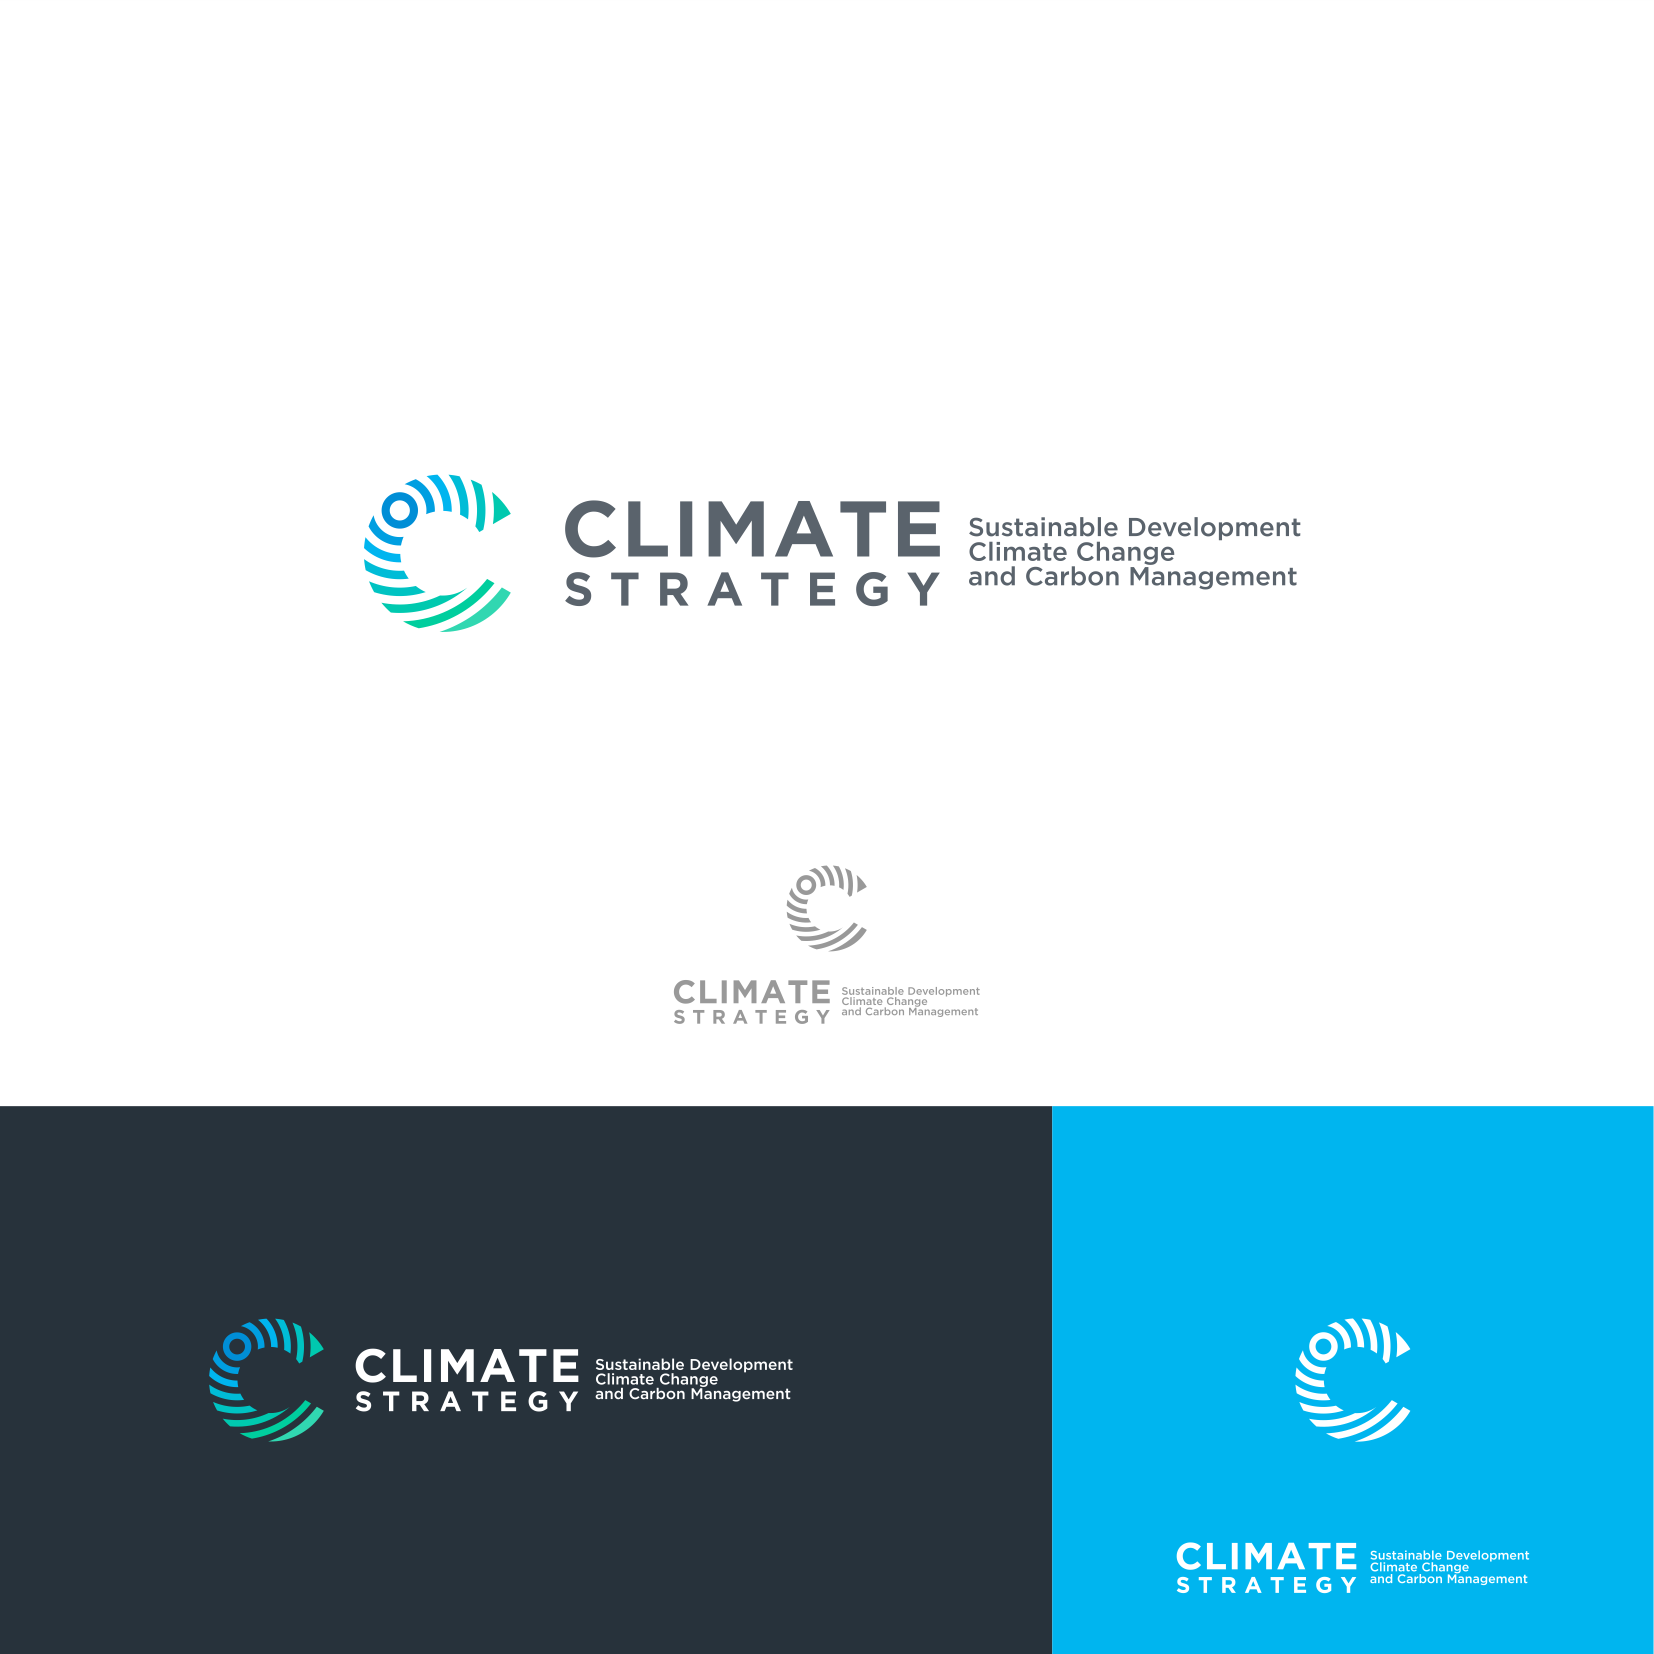 Climate strategy